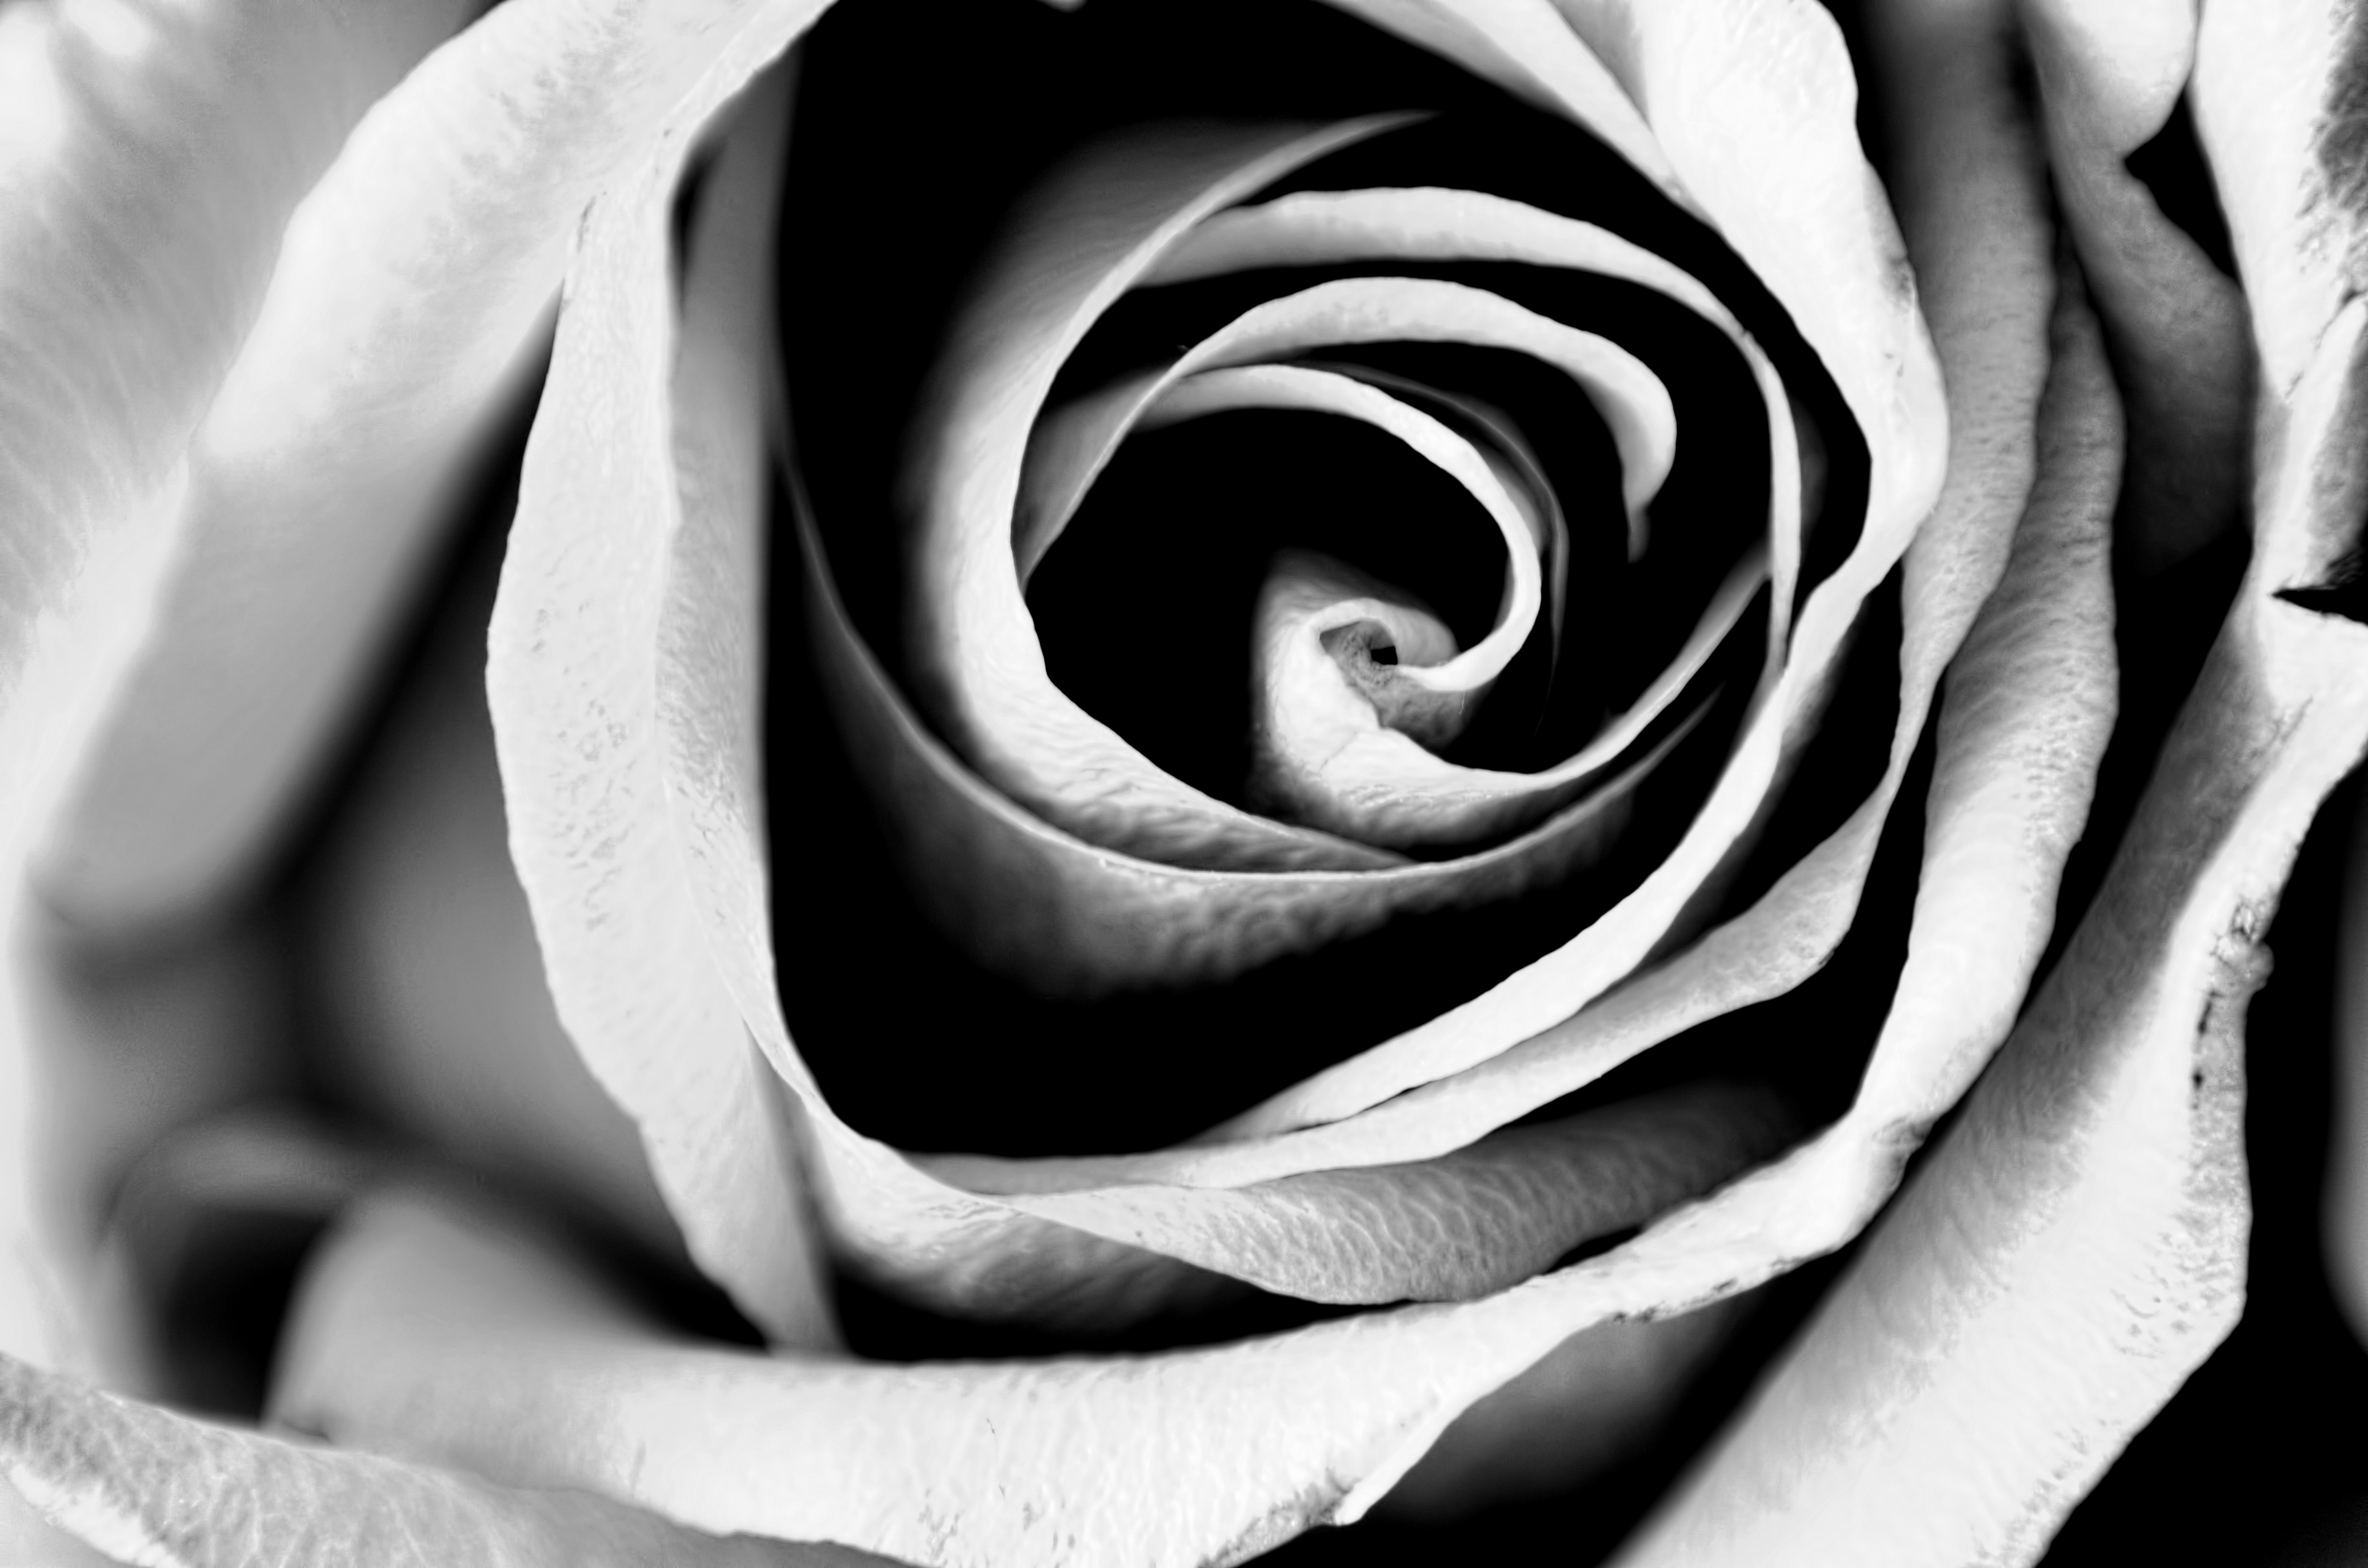 Flower Macro Black And White by drivenbyblood on DeviantArt